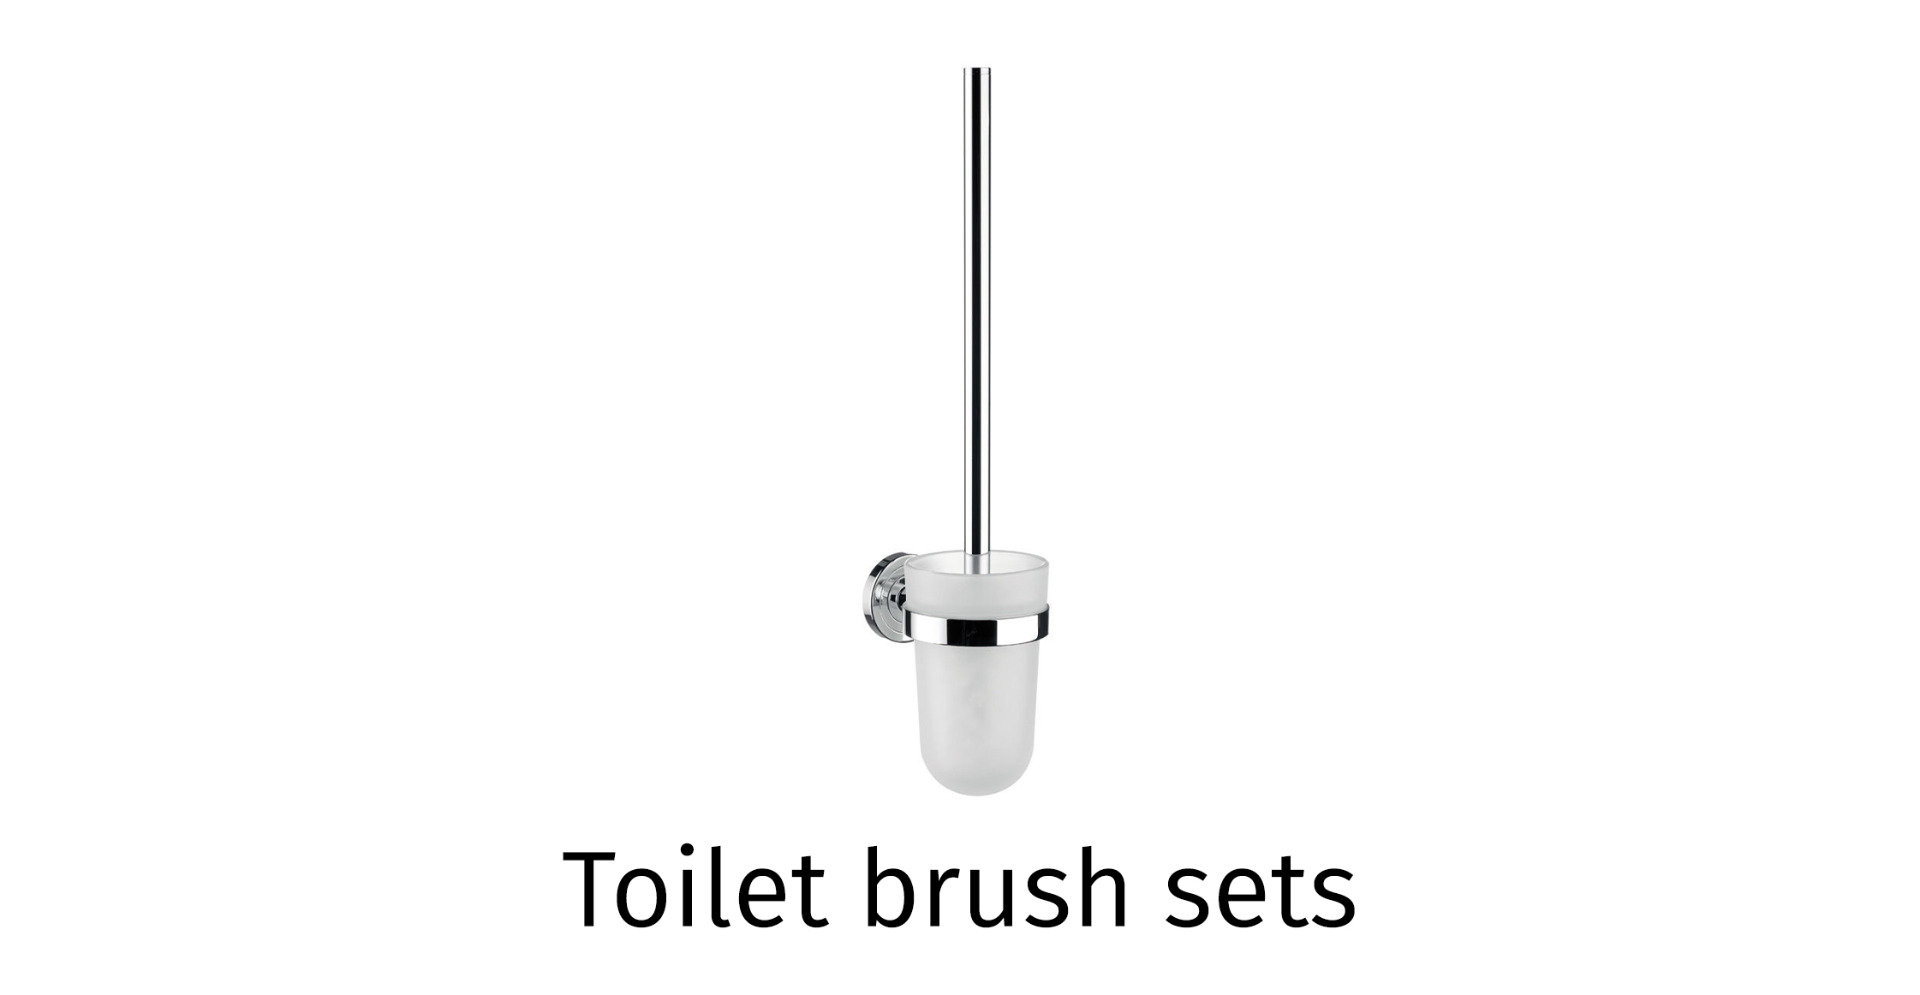 Toilet brush sets